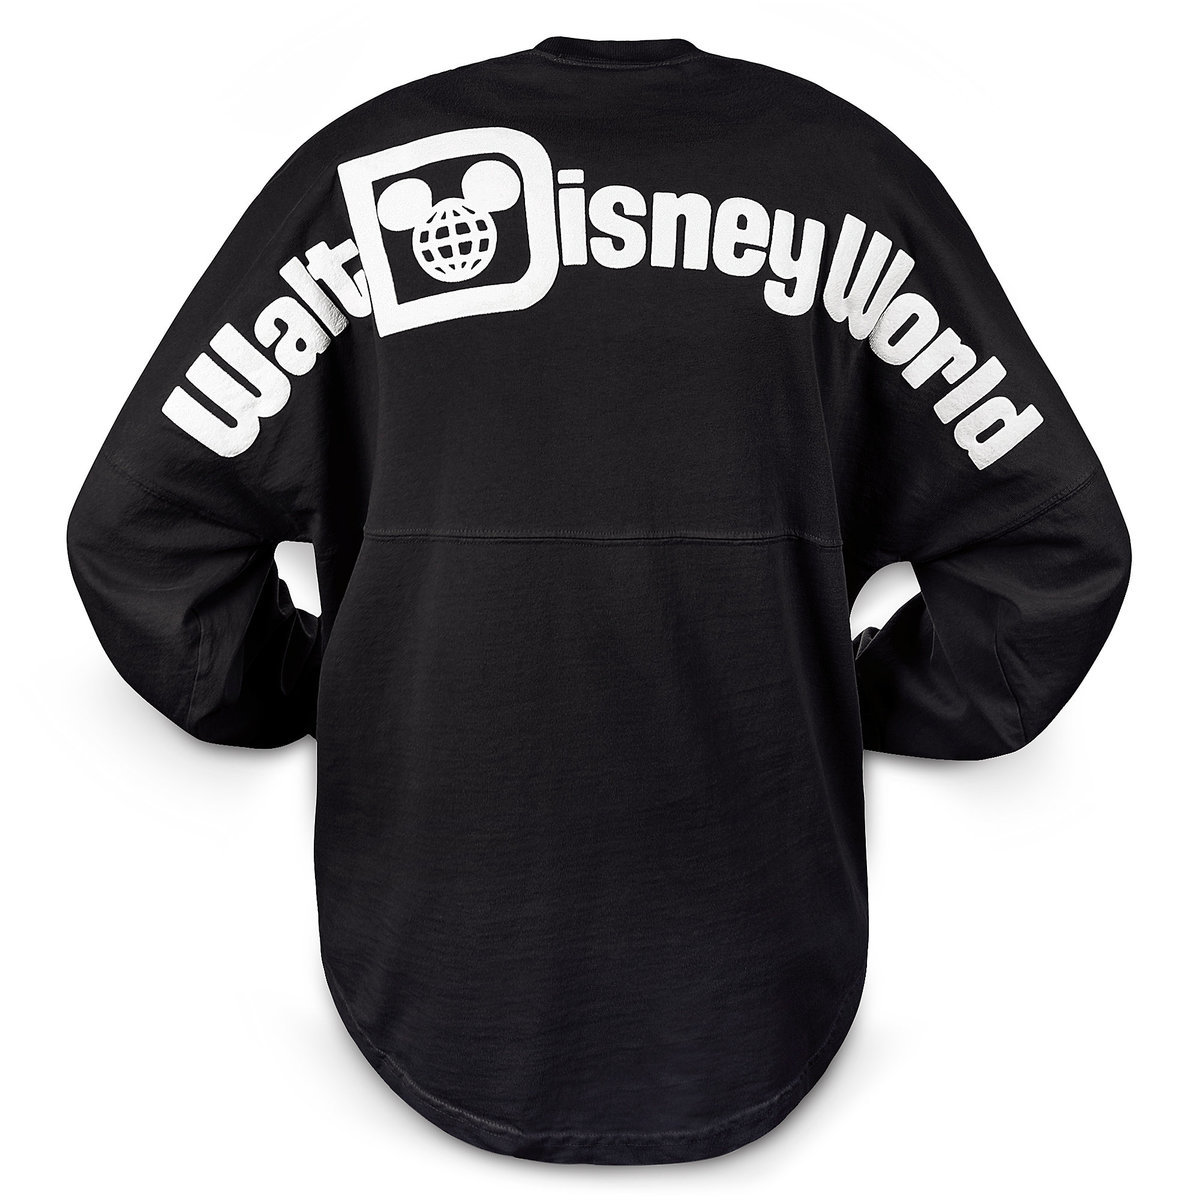 e698b748805d27 Product Image of Walt Disney World Long Sleeve Spirit T-Shirt for Women -  Black